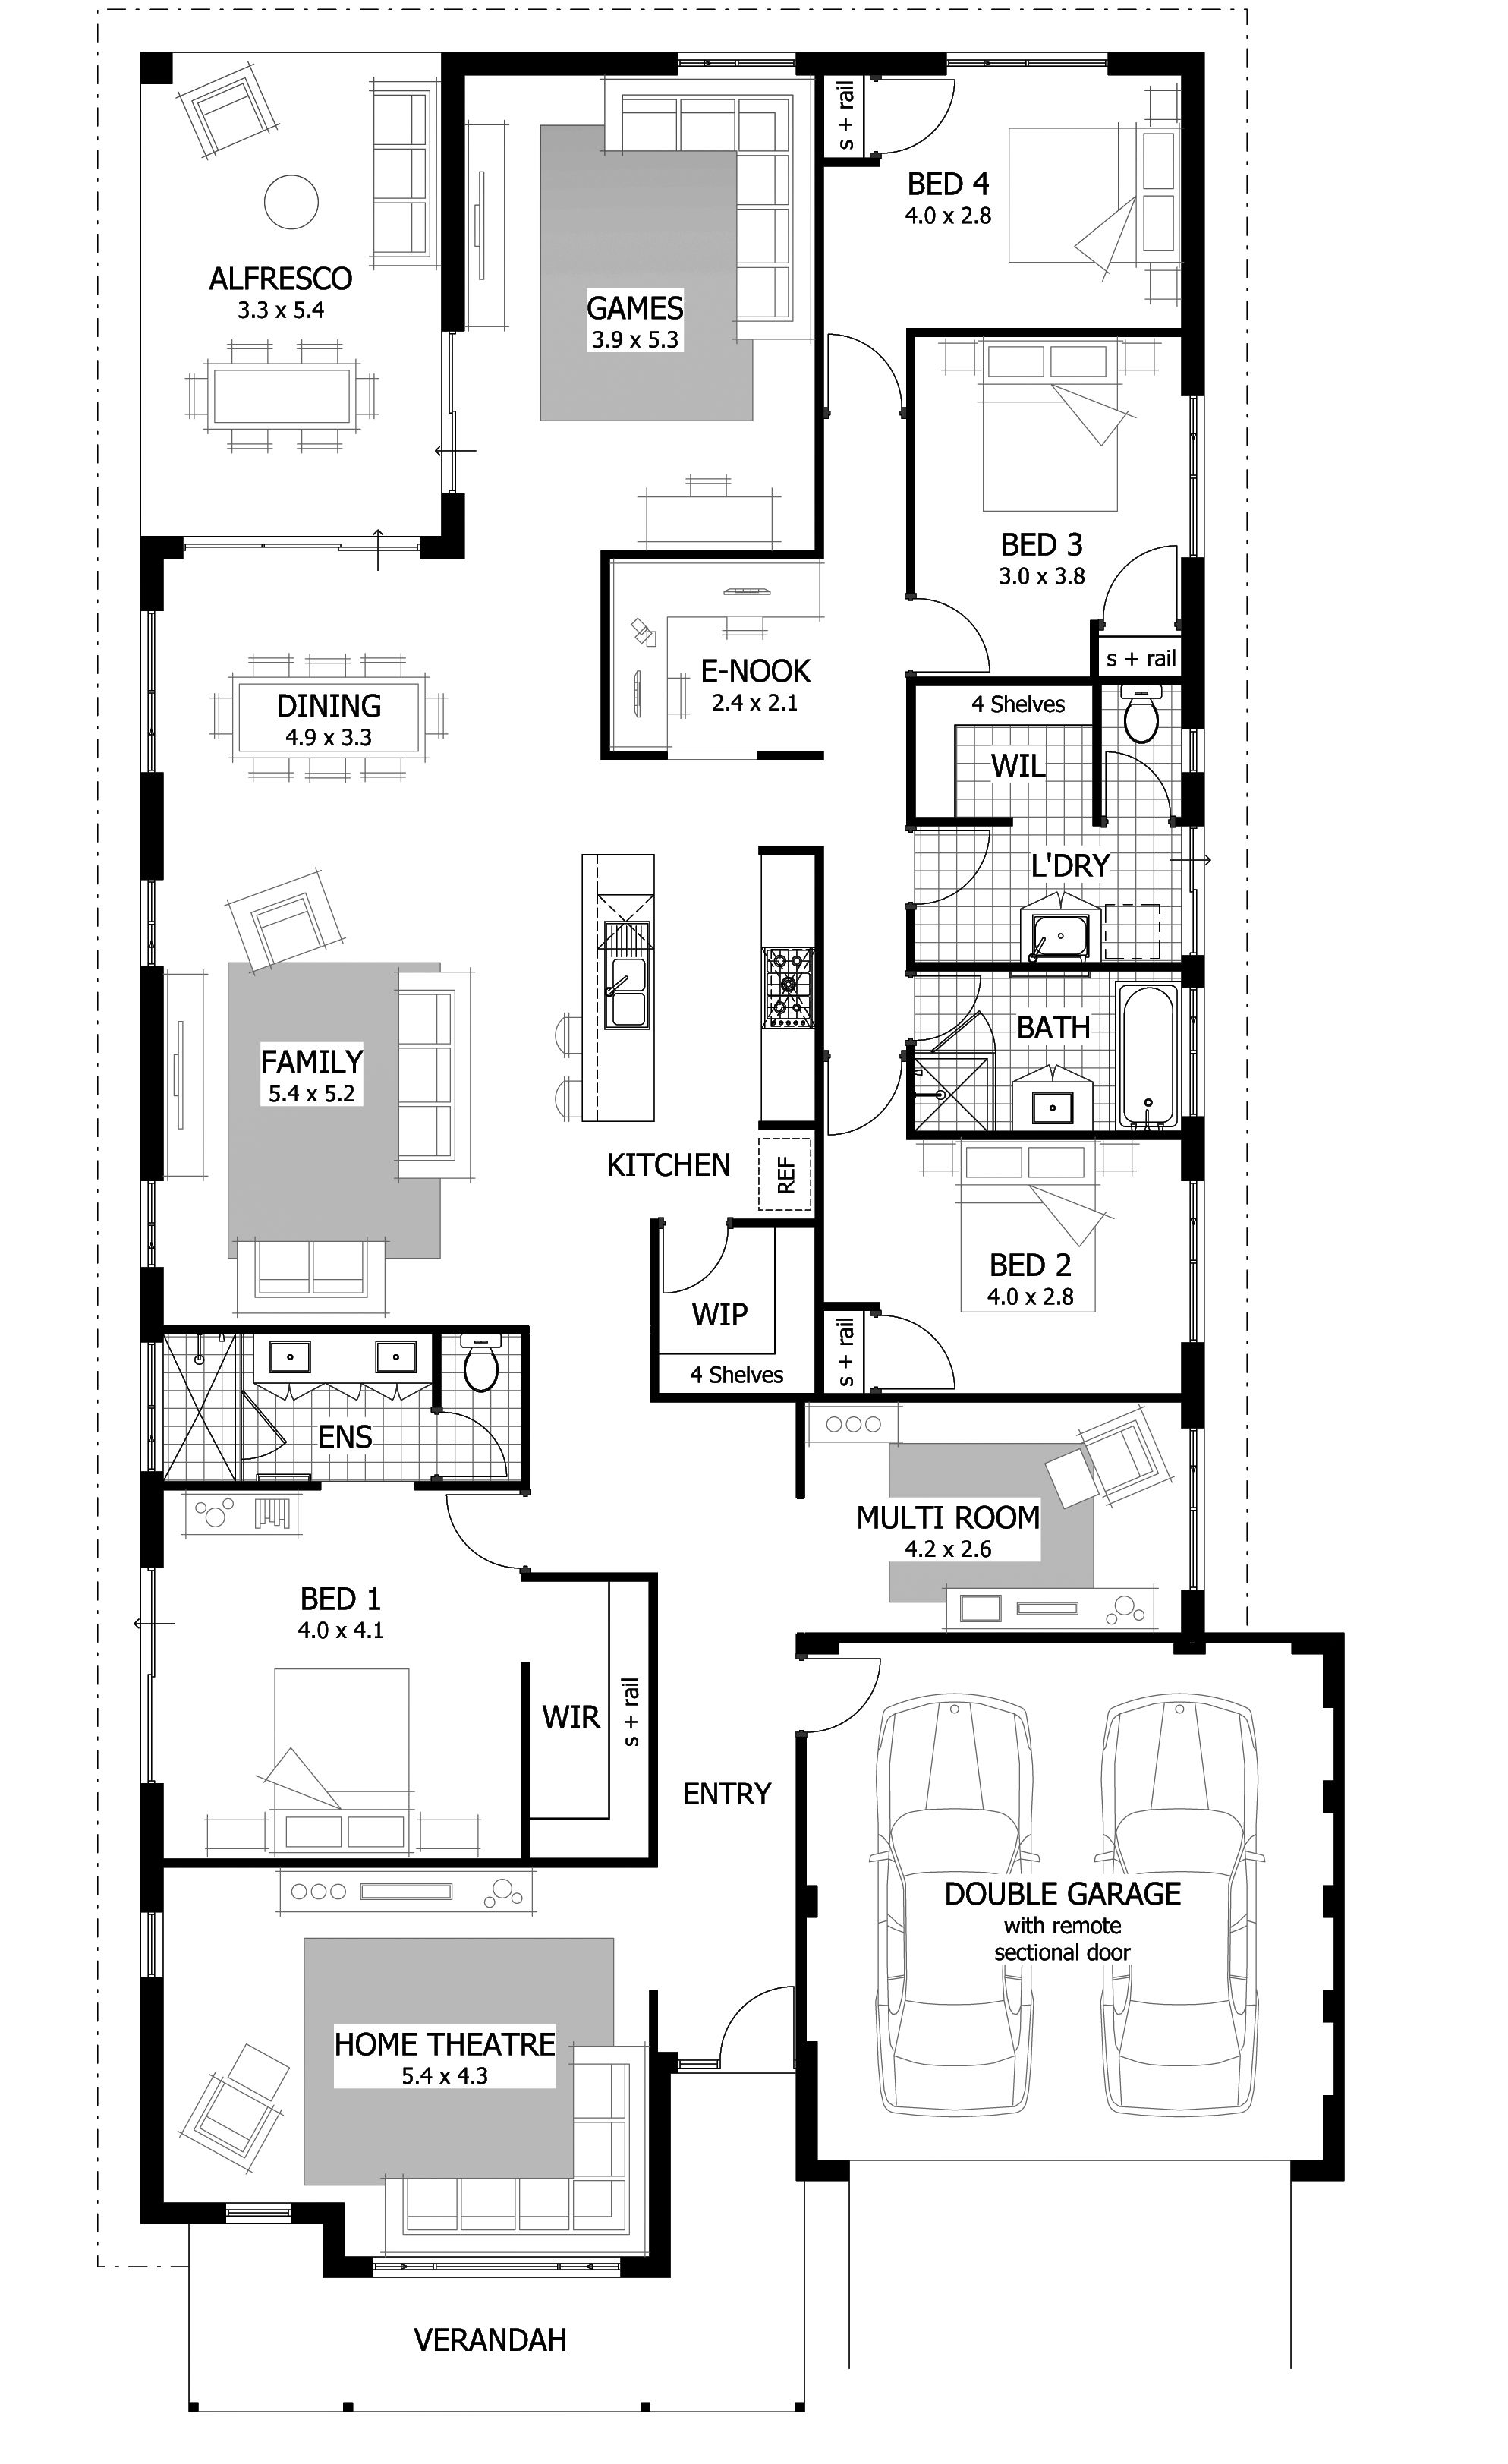 4 Bedroom Home Designs And Plans Rectangle House Plans Narrow House Plans Open Floor House Plans